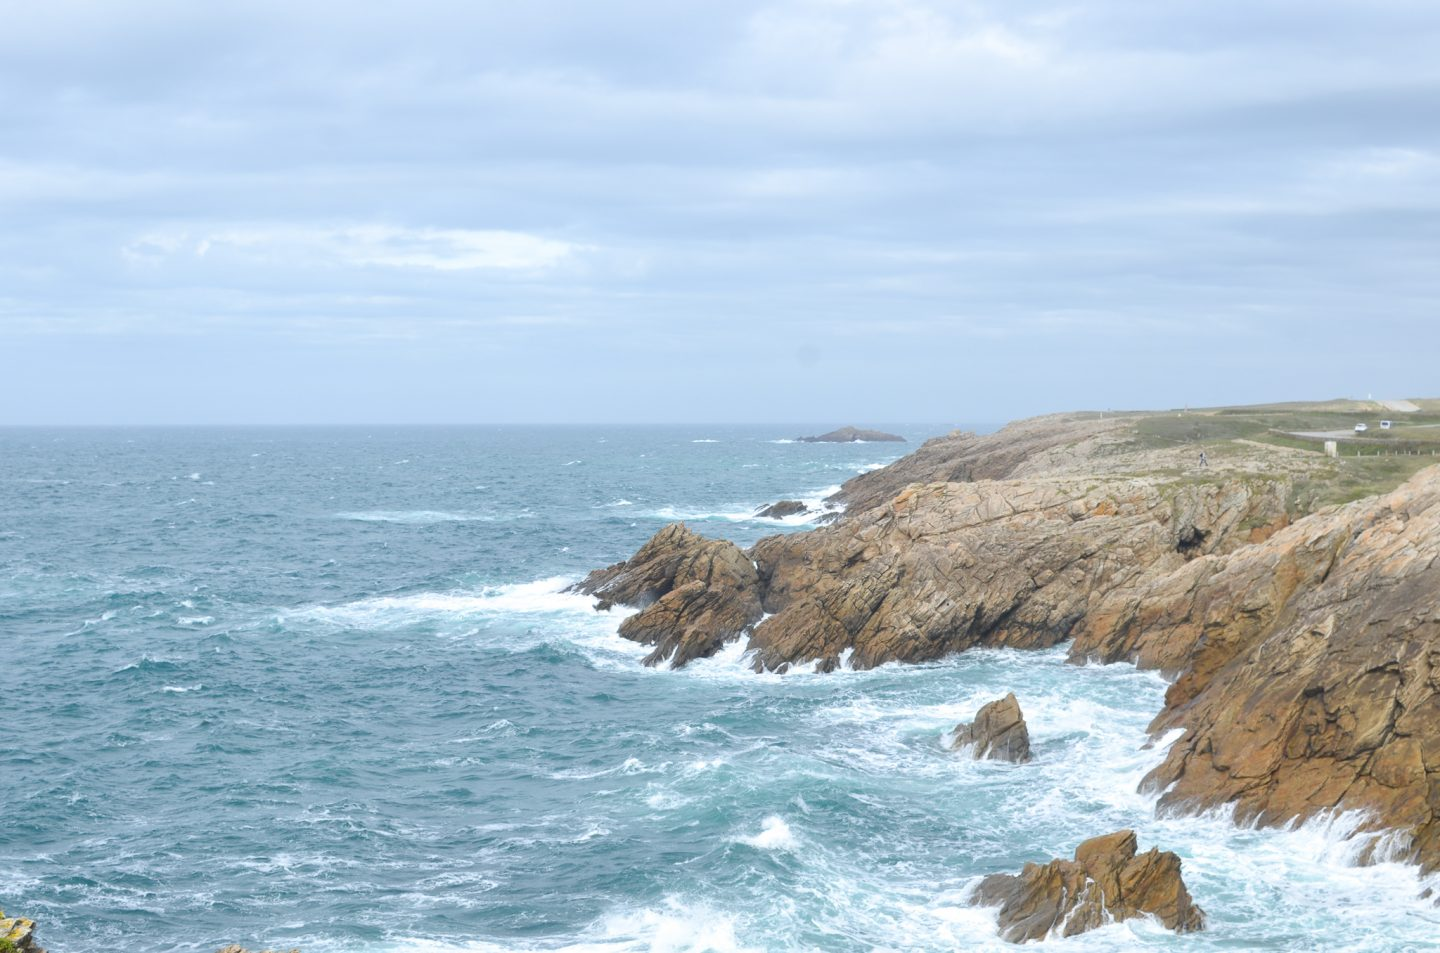 Bretagne/Brittany: My Five Highlights